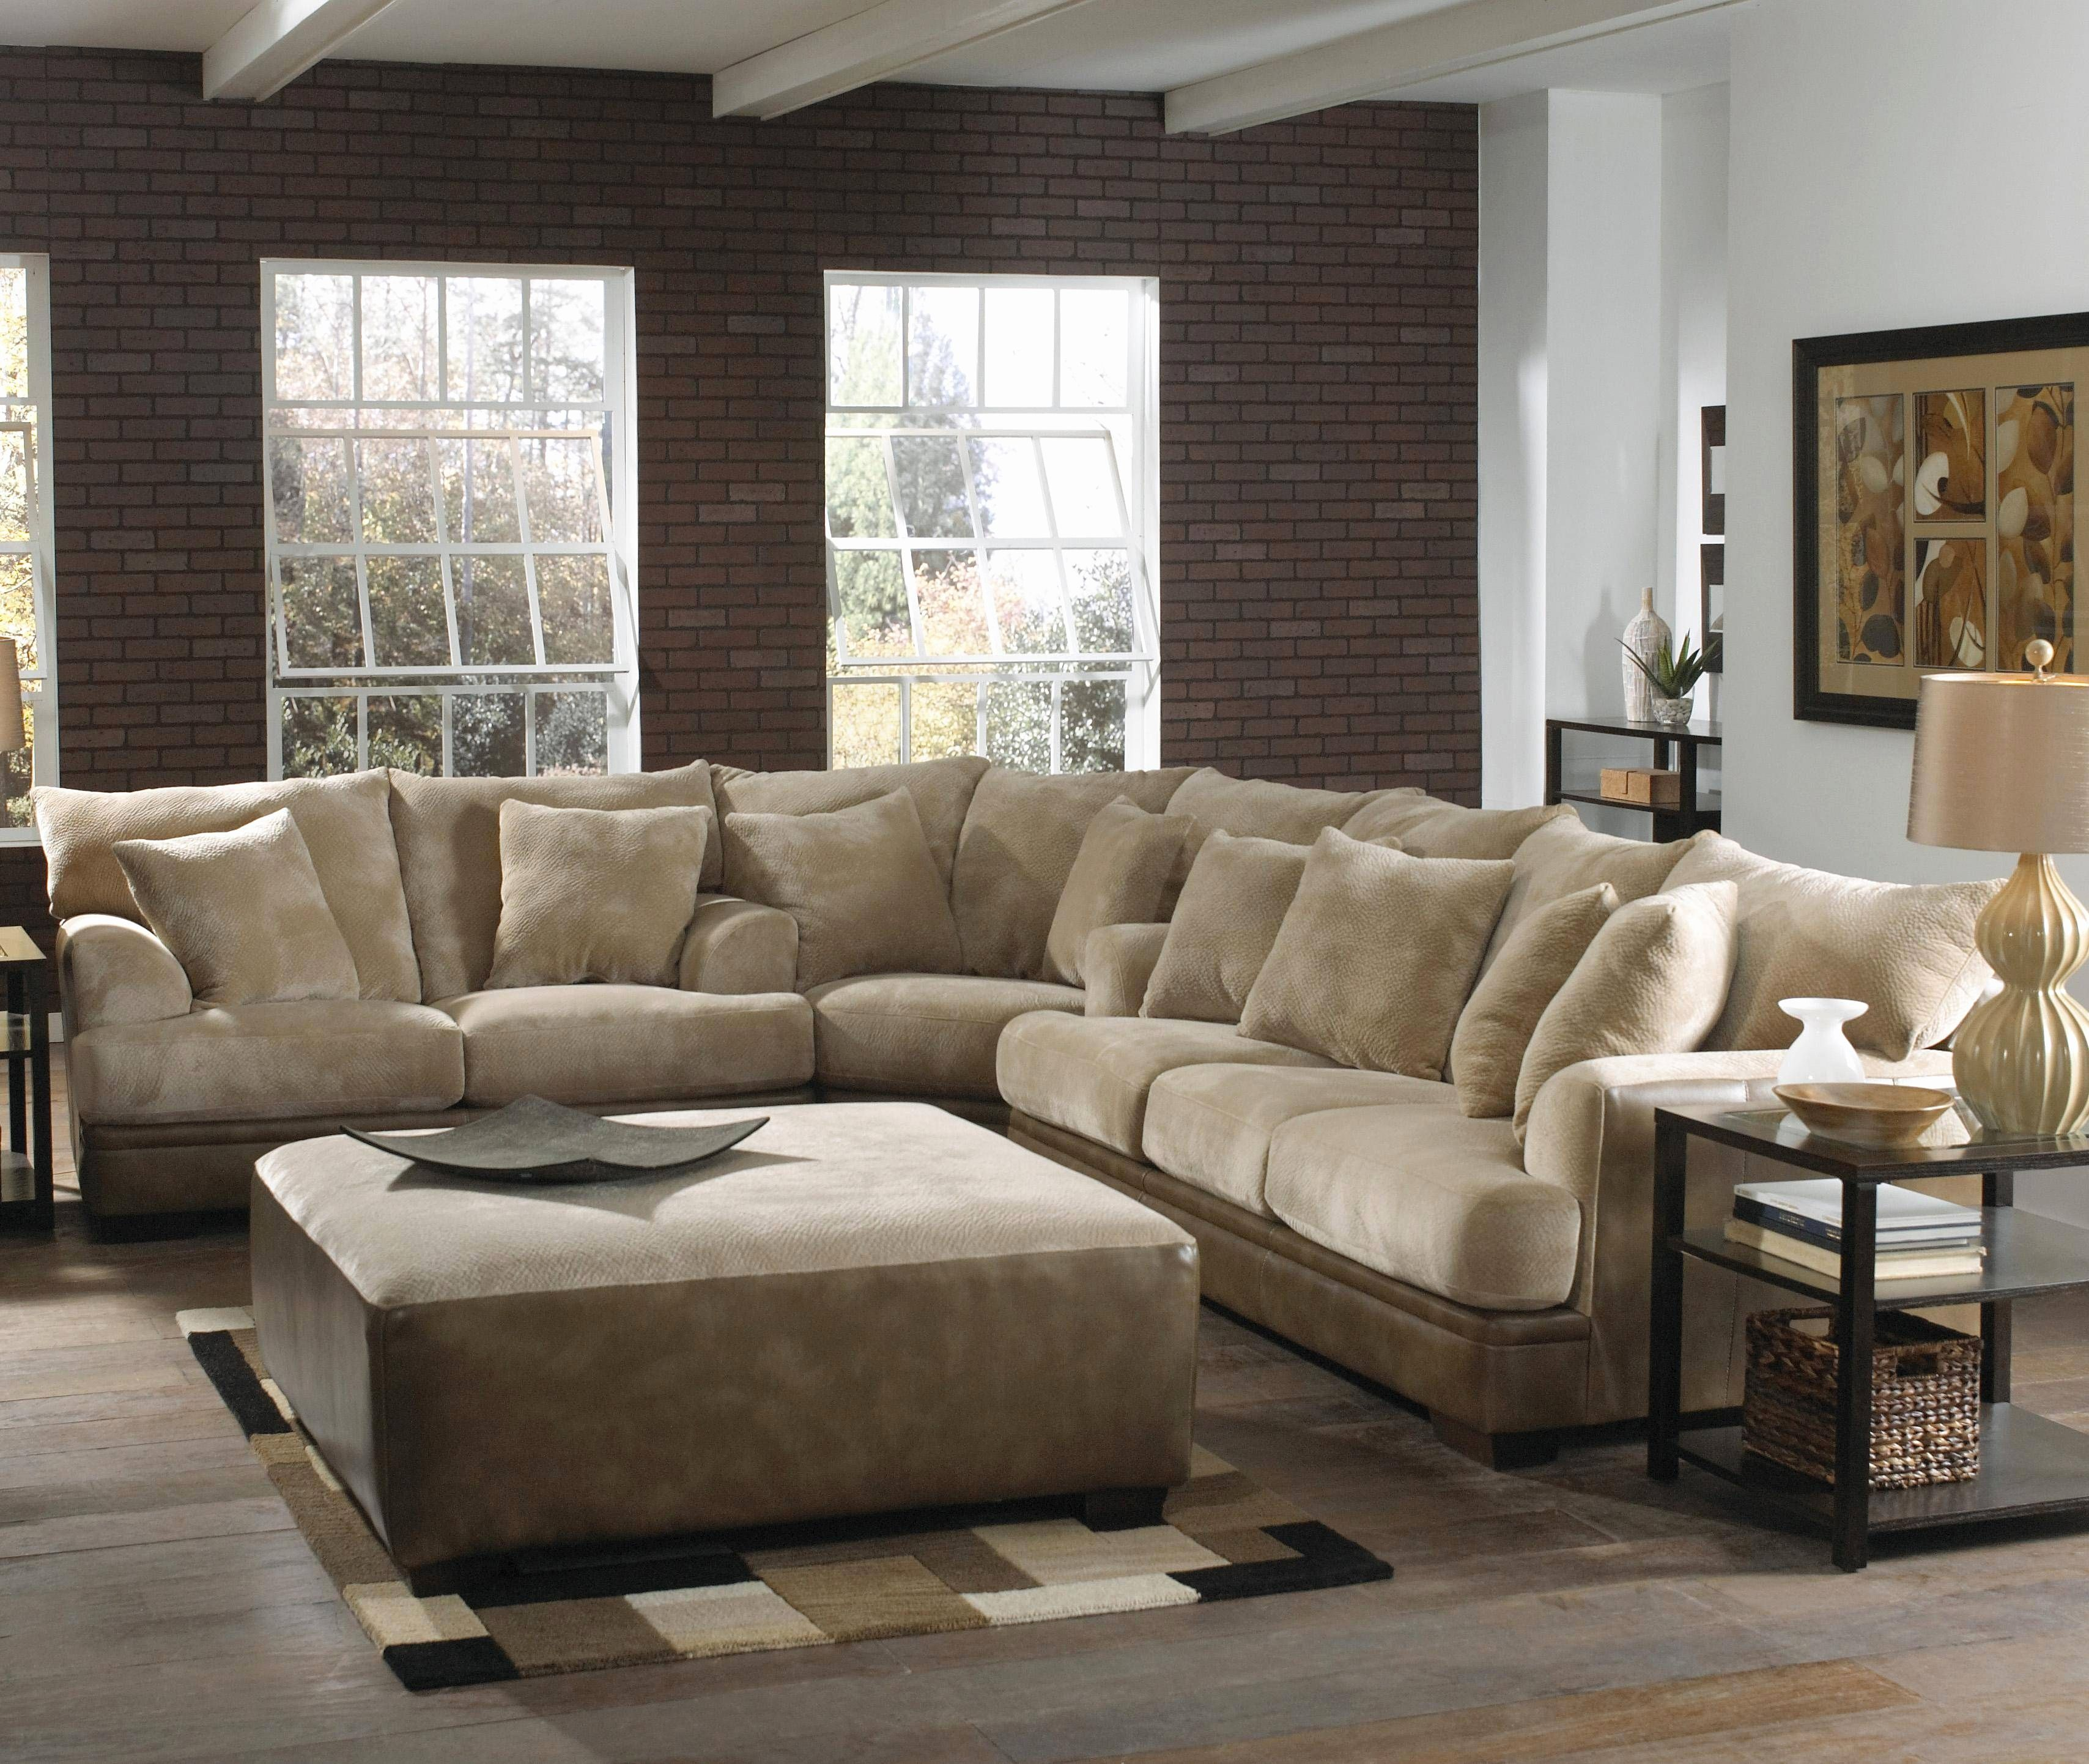 Beautiful Huge Sectional Sofa Pictures Huge Sectional Sofa Unique 30 Best Collection Of Extra Living Room Sets Corner Fireplace Living Room Couches Living Room